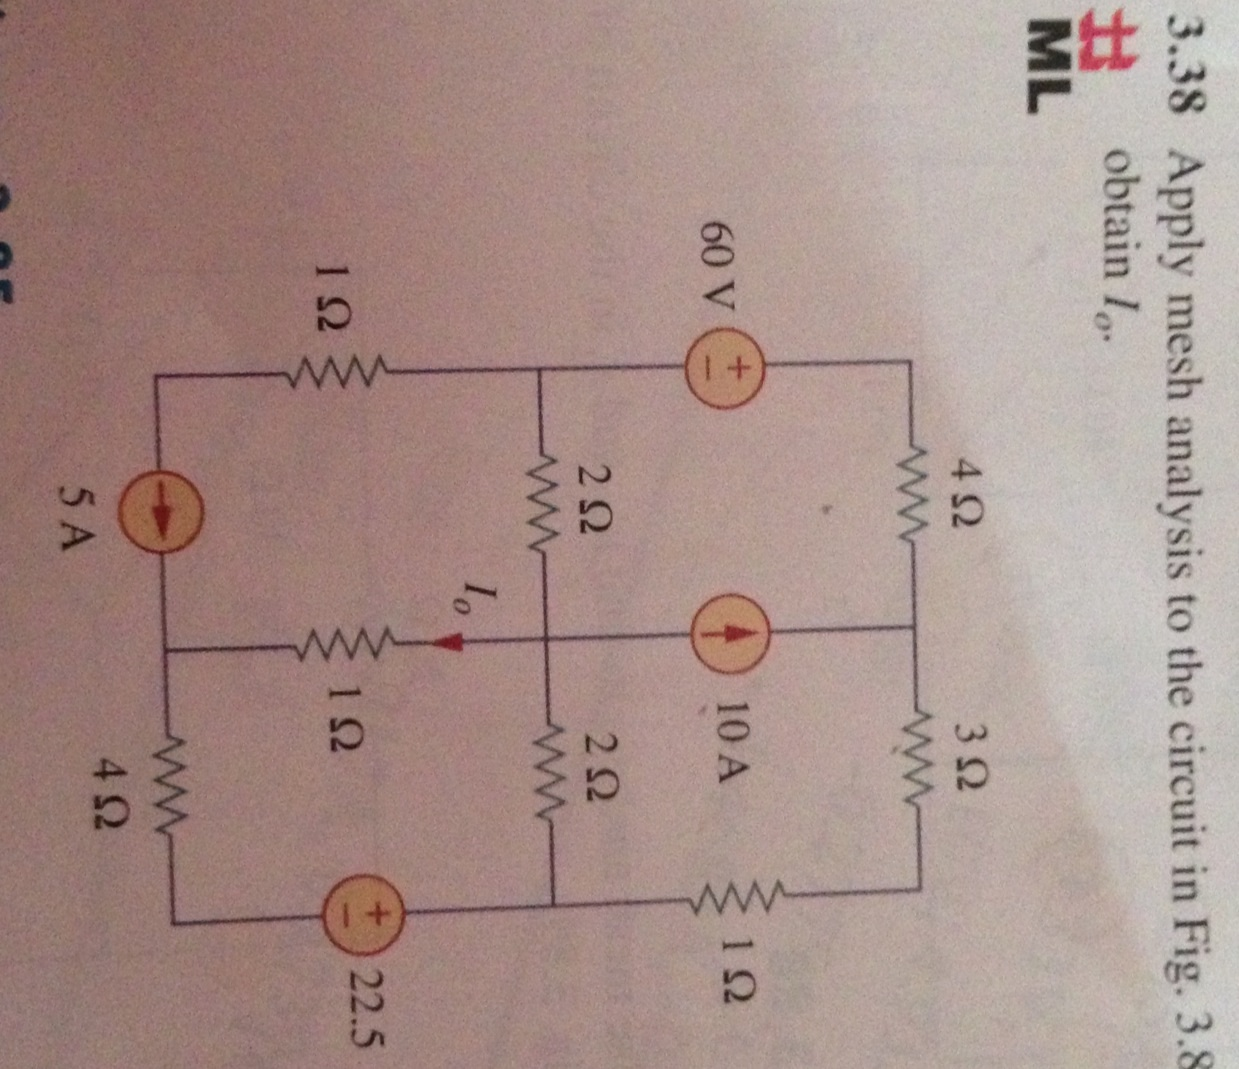 Apply mesh analysis to the circuit in Fig3. 38 obt